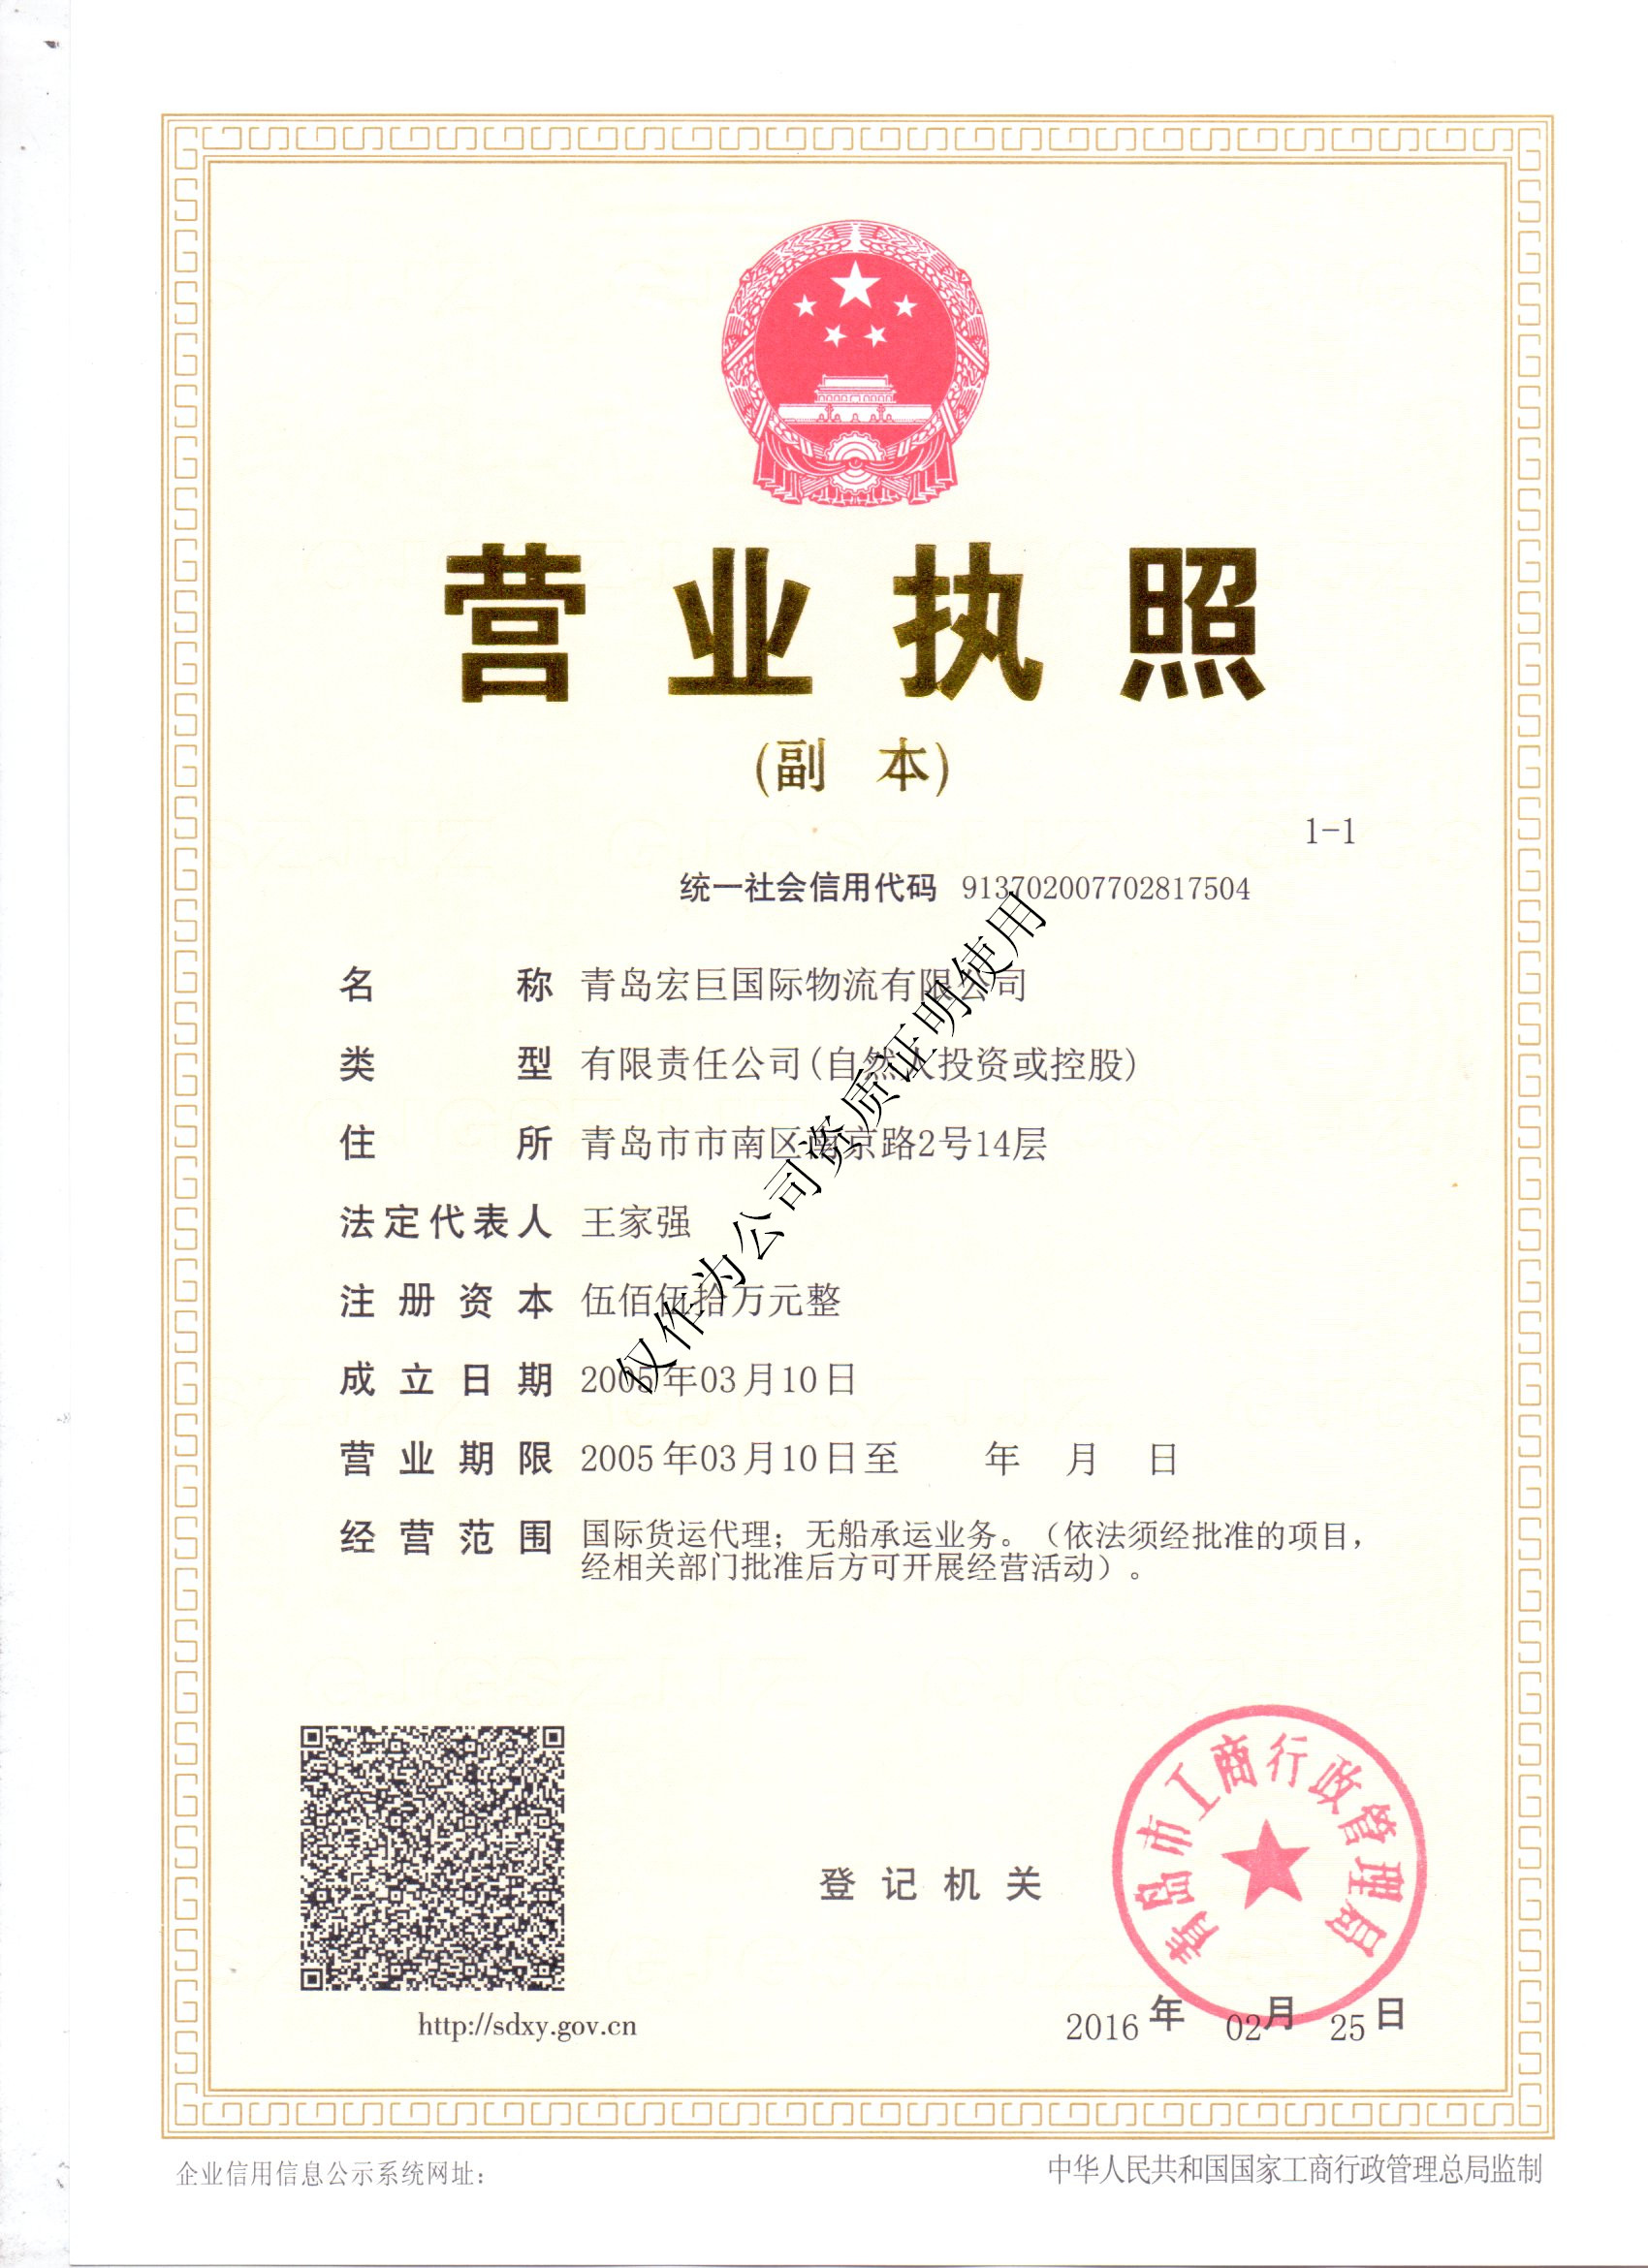 License of the business corporation